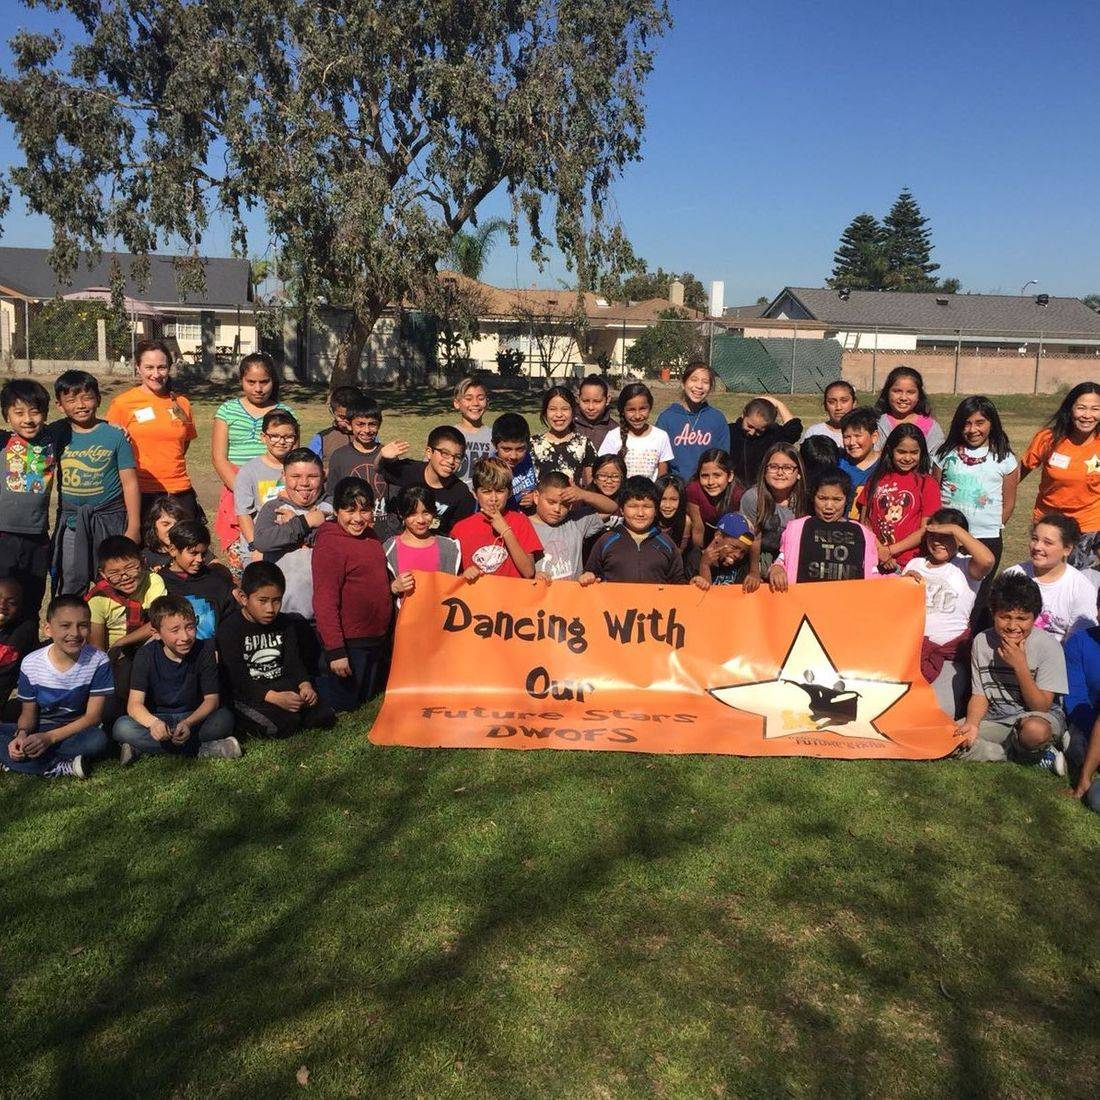 Tierra Vista 4th graders